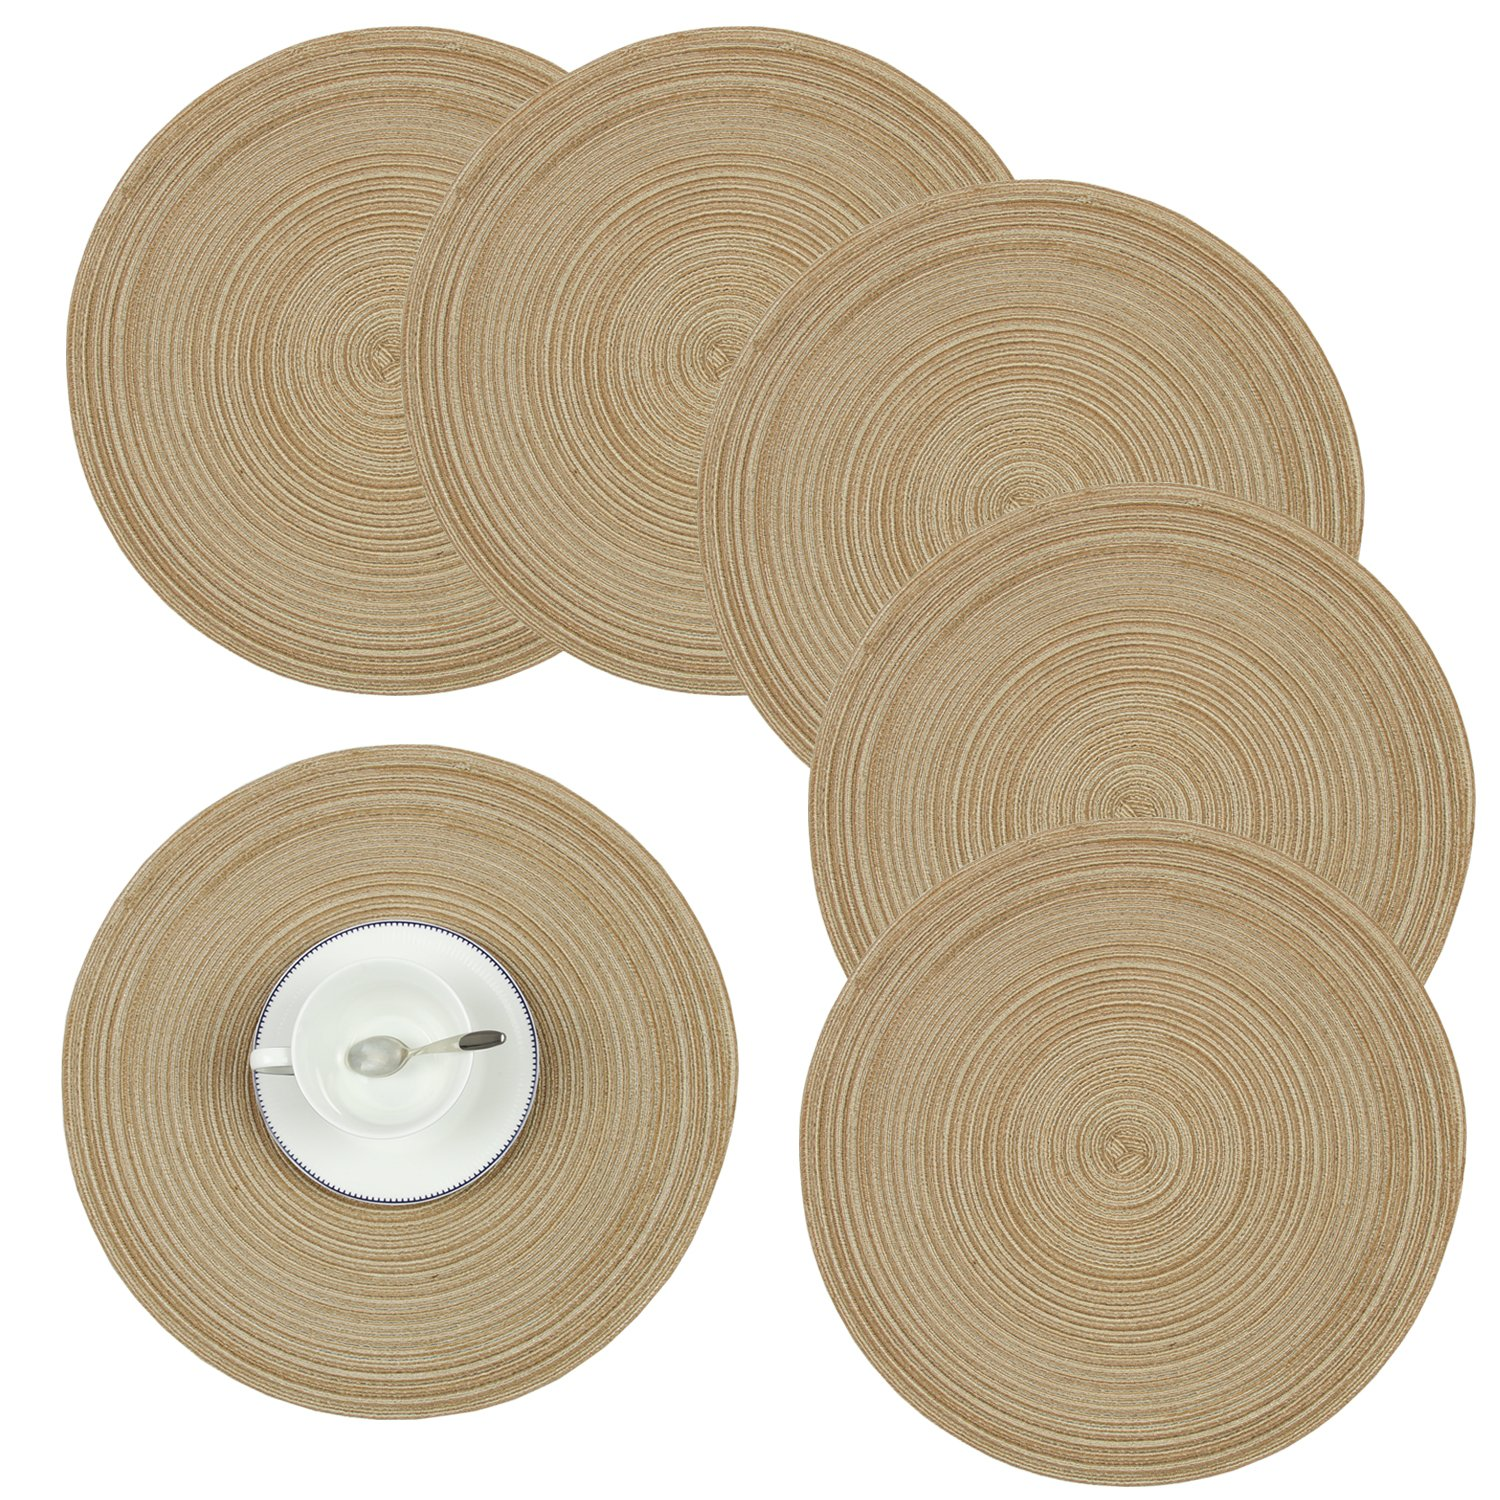 Homcomoda Round Table Placemats, Placemats Kitchen Table Set 6-14 inch (Brown)